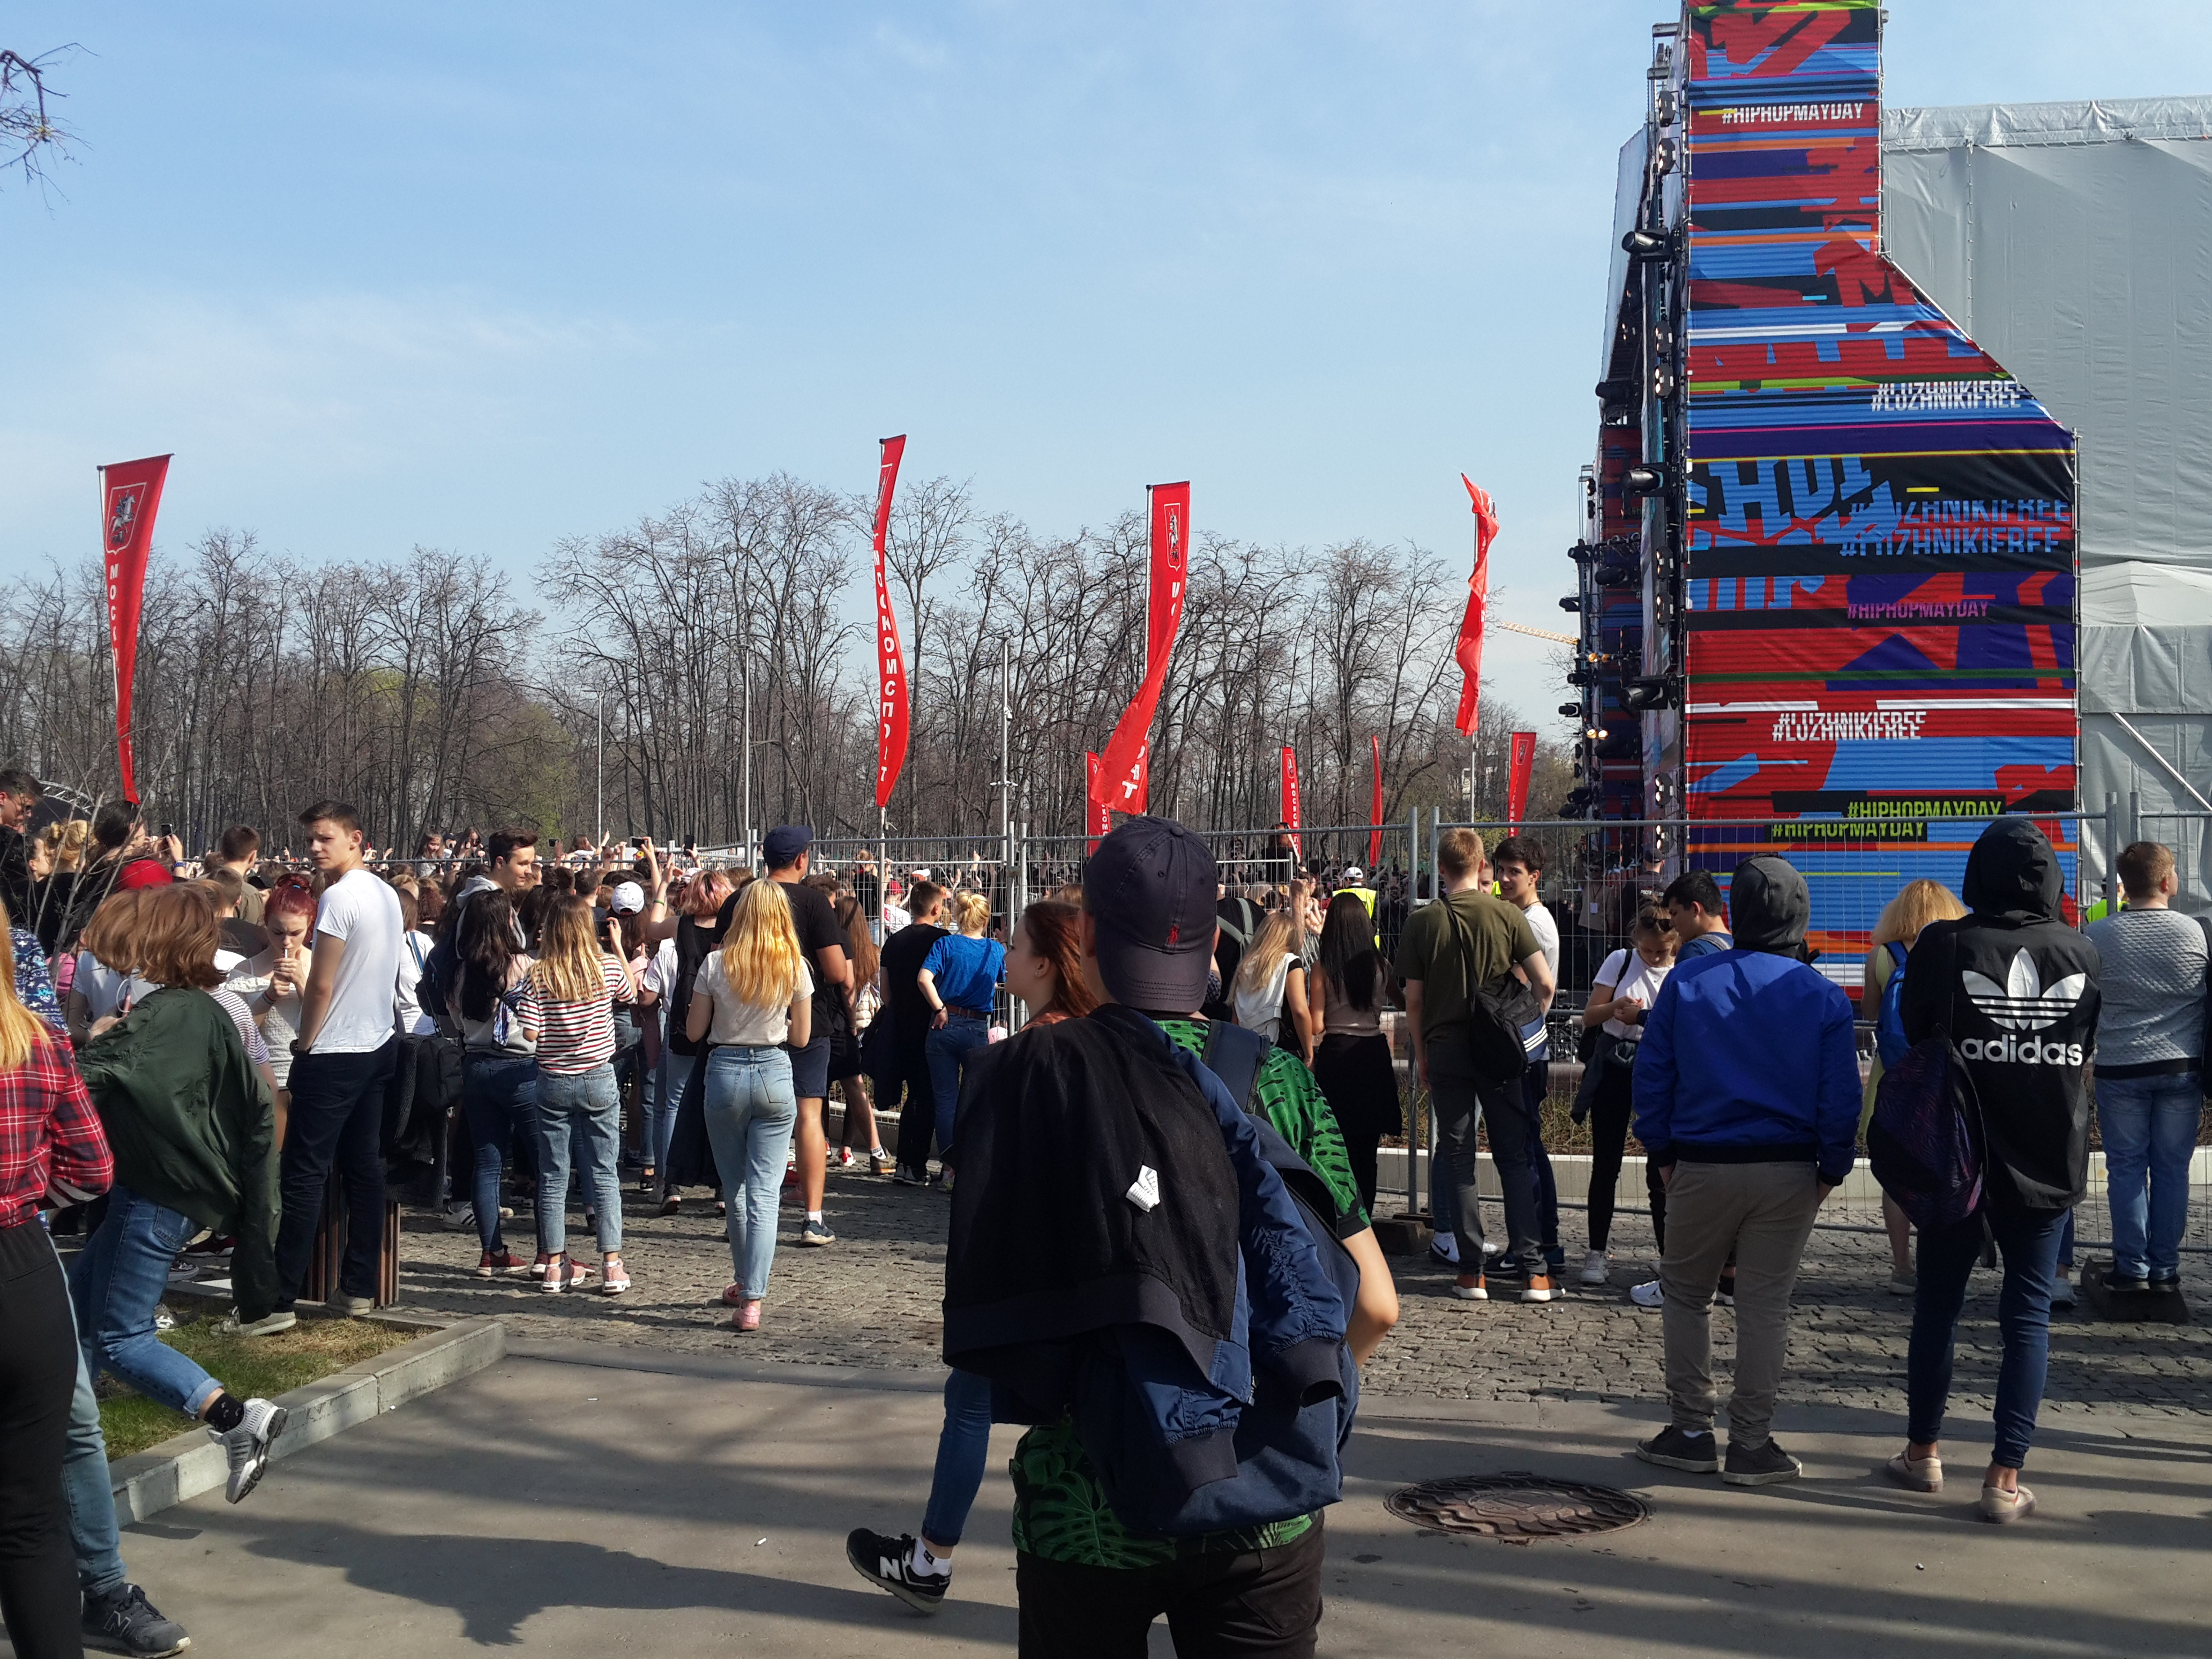 File:Hip Hop MayDay Moscow 2018 11.jpg Wikimedia Commons